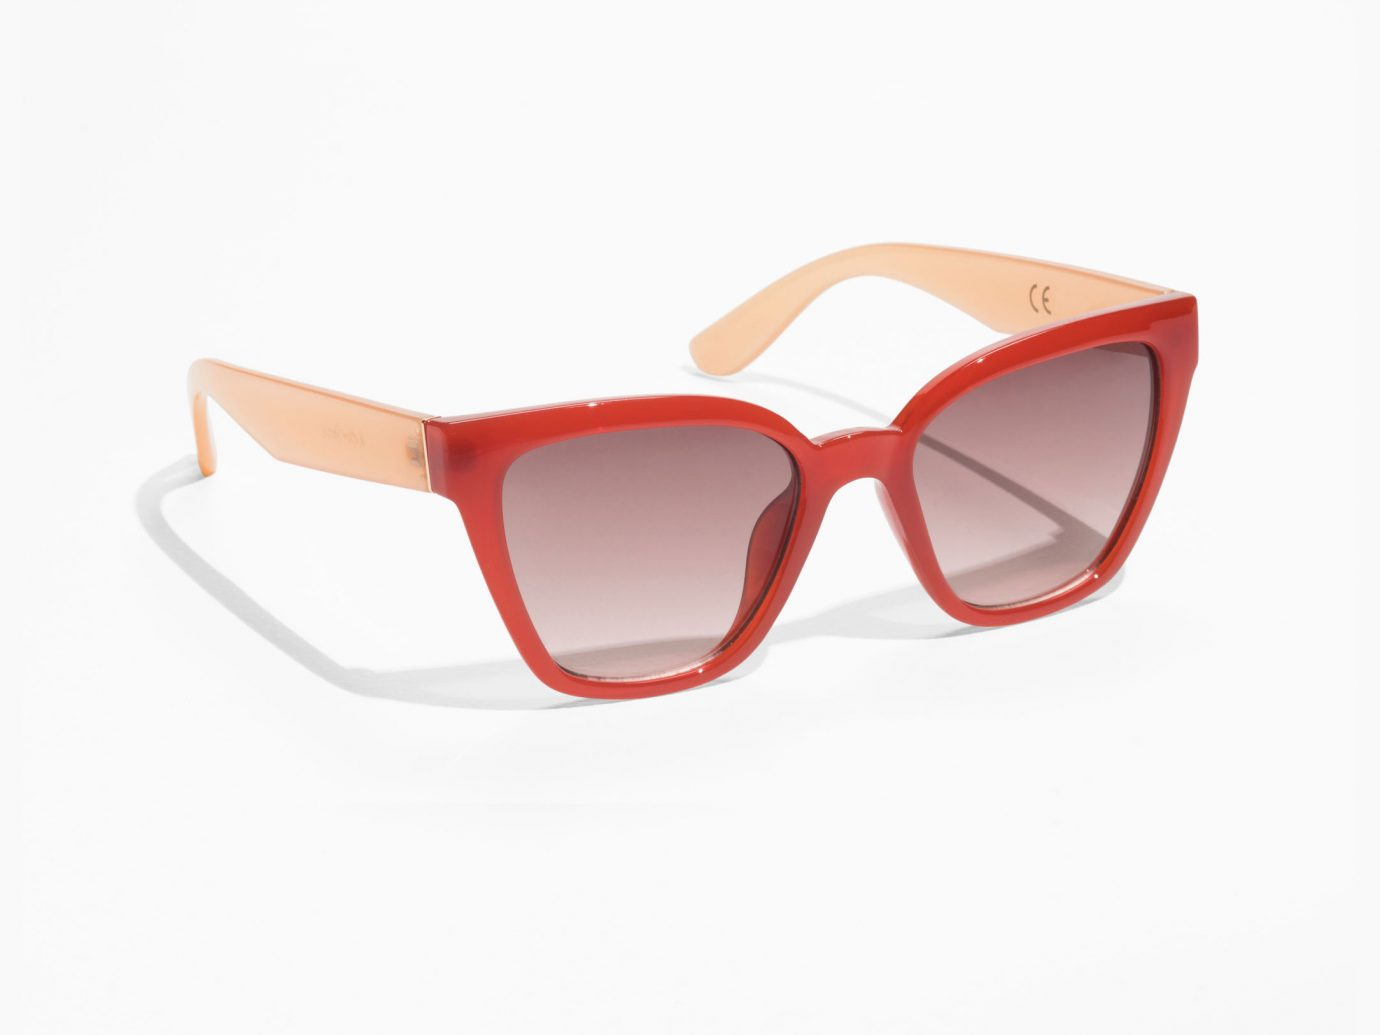 & Other Stories Cat Eye Sunglasses